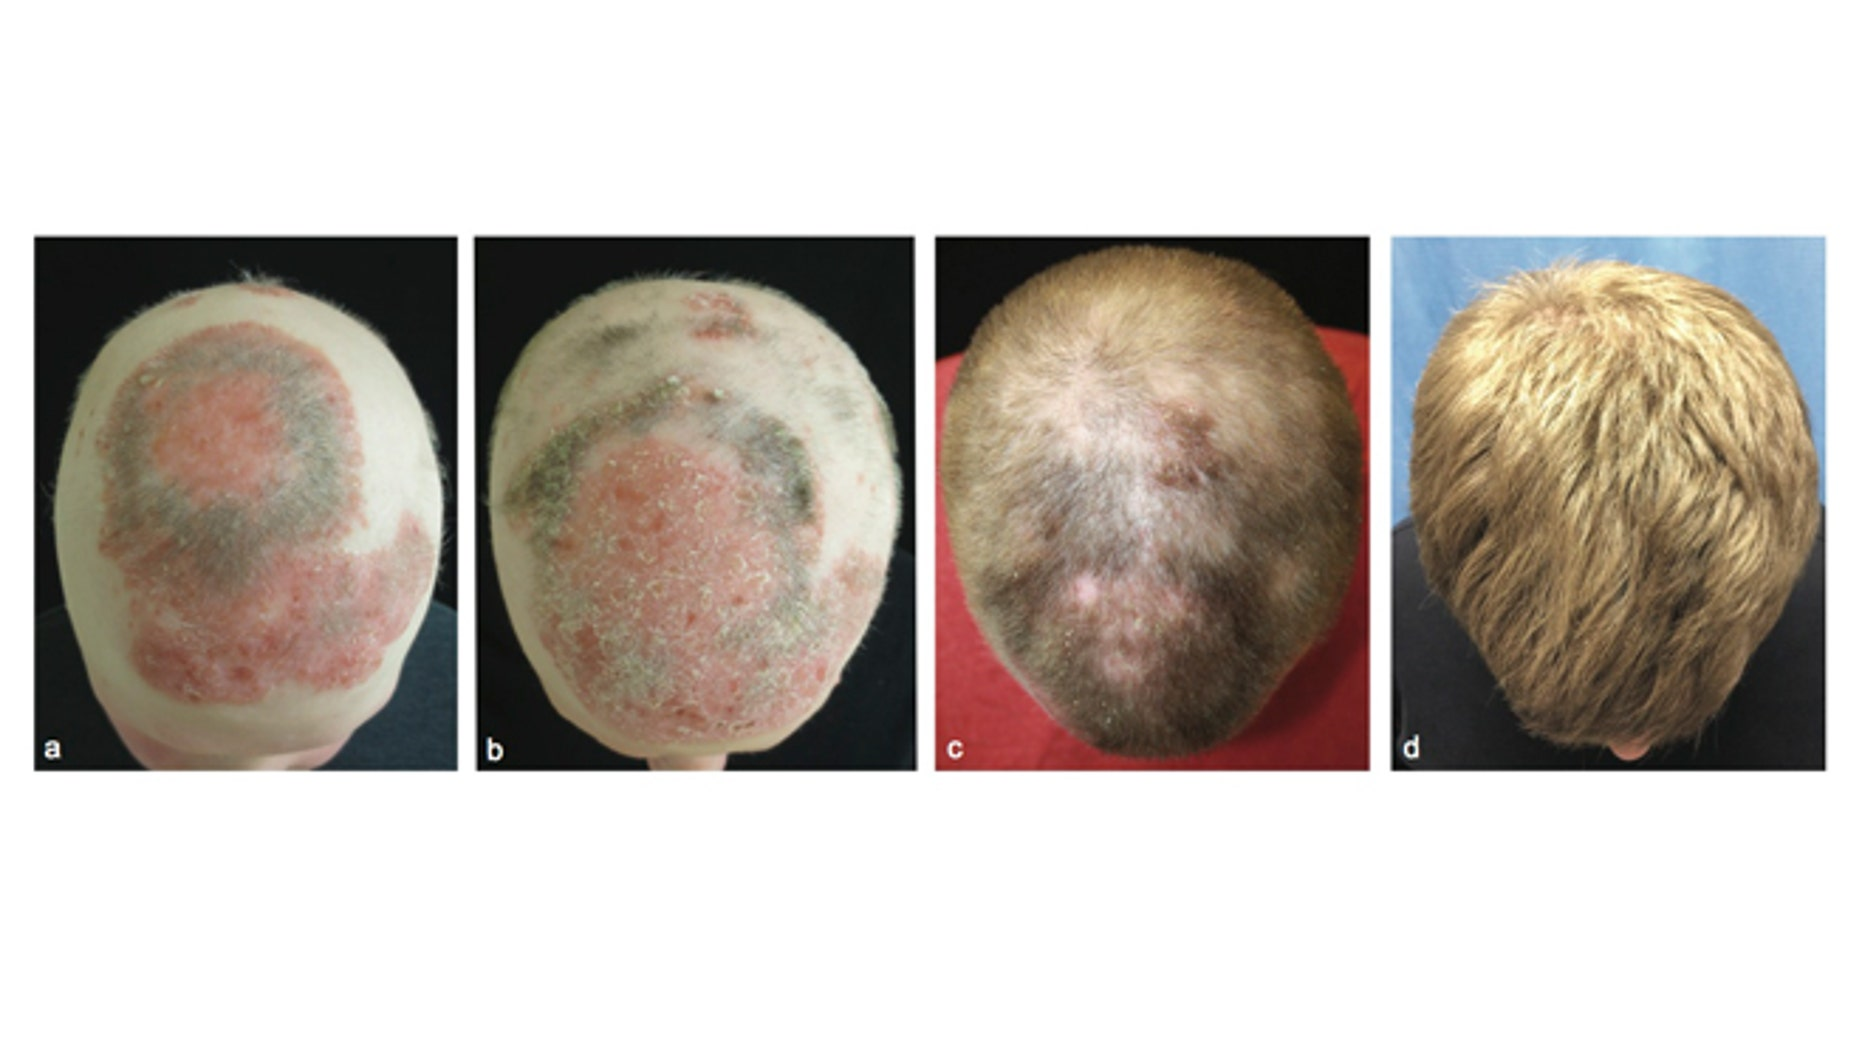 Images showing the alopecia patient during treatment with tofacitinib to regrow his hair. 1st panel- before treatment. 2nd panel- 2 months into treatment. 3rd panel- 5 months into treatment. 4th panel- 8 months into treatment.